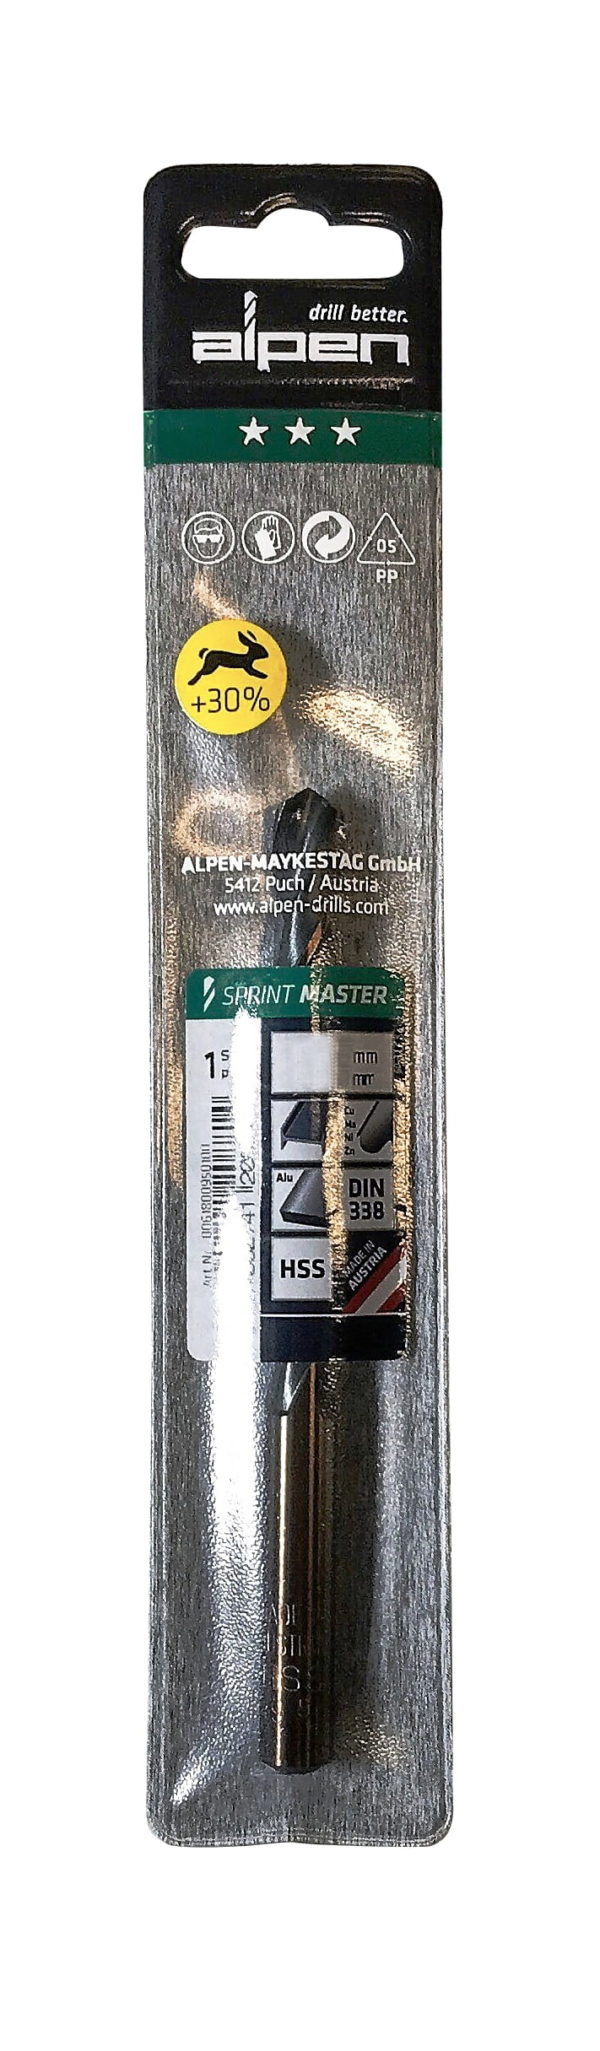 Alpen Series 631 Sprint Master Ø 10.0 (Pkt of 10) With Hang Tag